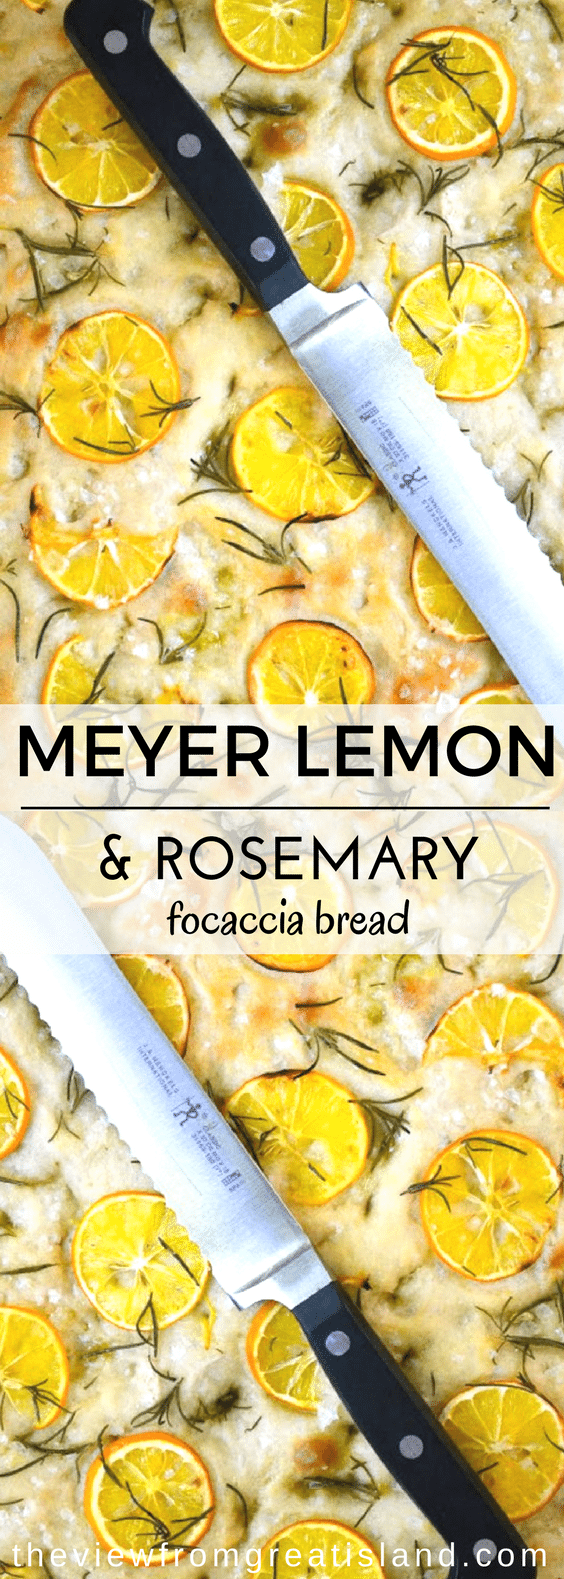 Meyer Lemon and Rosemary Focaccia Bread is a quick and easy no knead yeast bread that's ready in about an hour. This classic Italian crusty bread makes the most fabulous appetizer ever! #bread #focacciabread #Italianbread #appetizer #rosemarybread #lemonbread #yeastbread #noknead #quickbread #flatbread